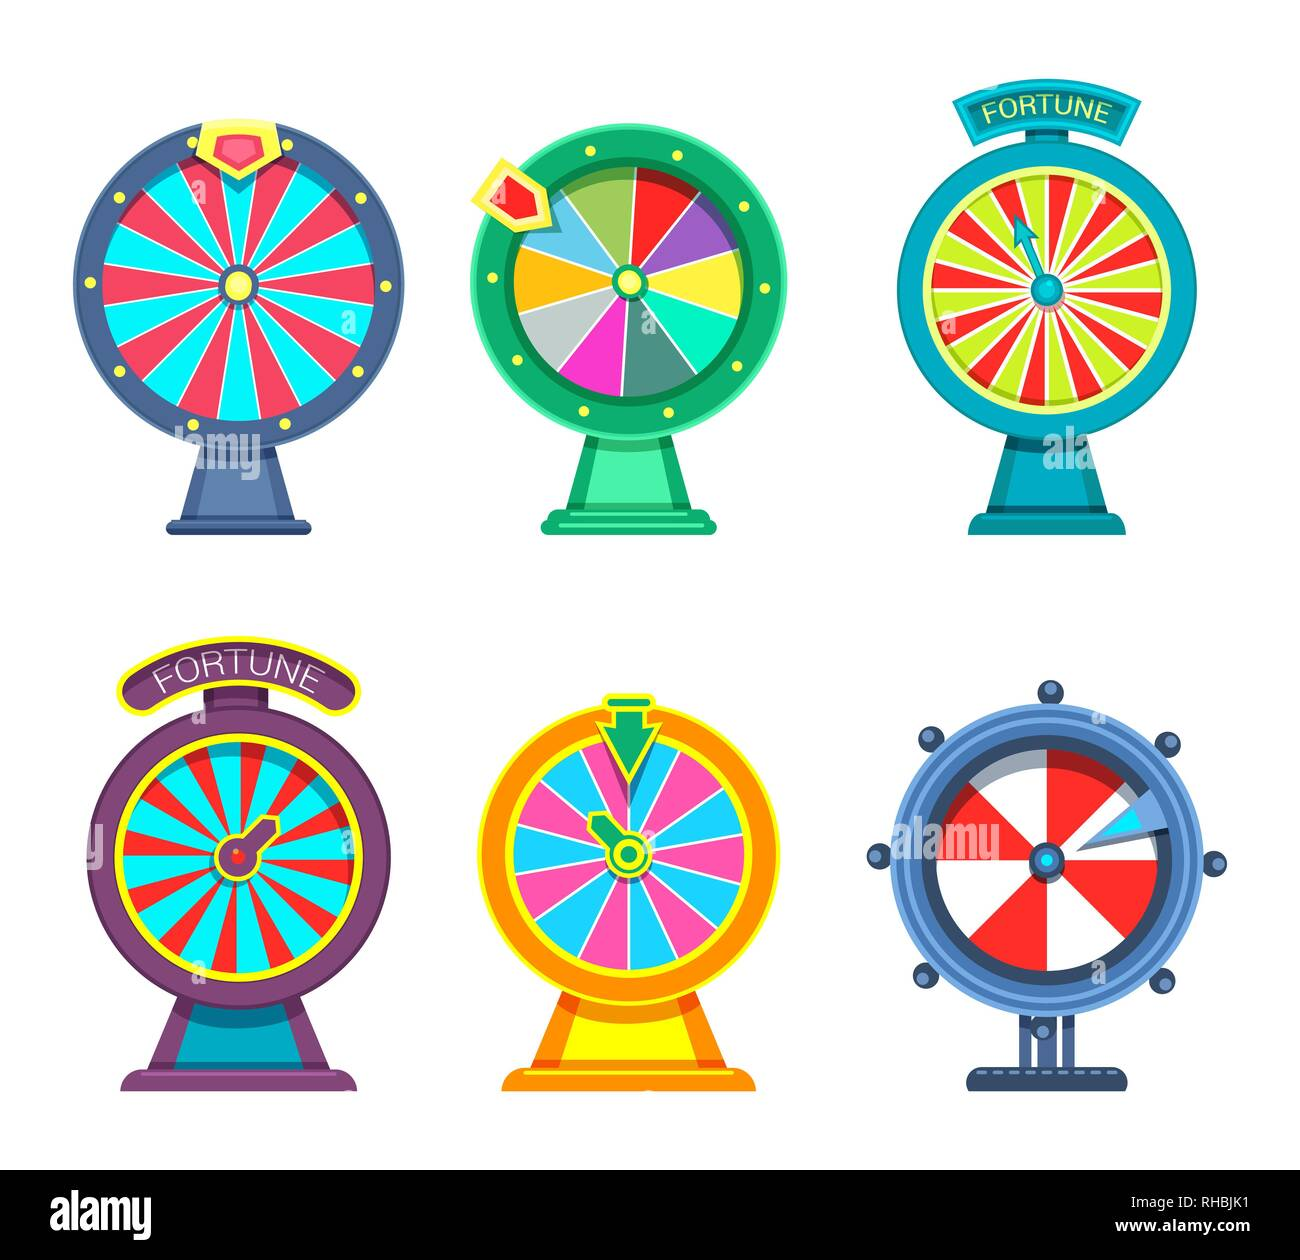 Gambling wheels of fortune - Stock Vector